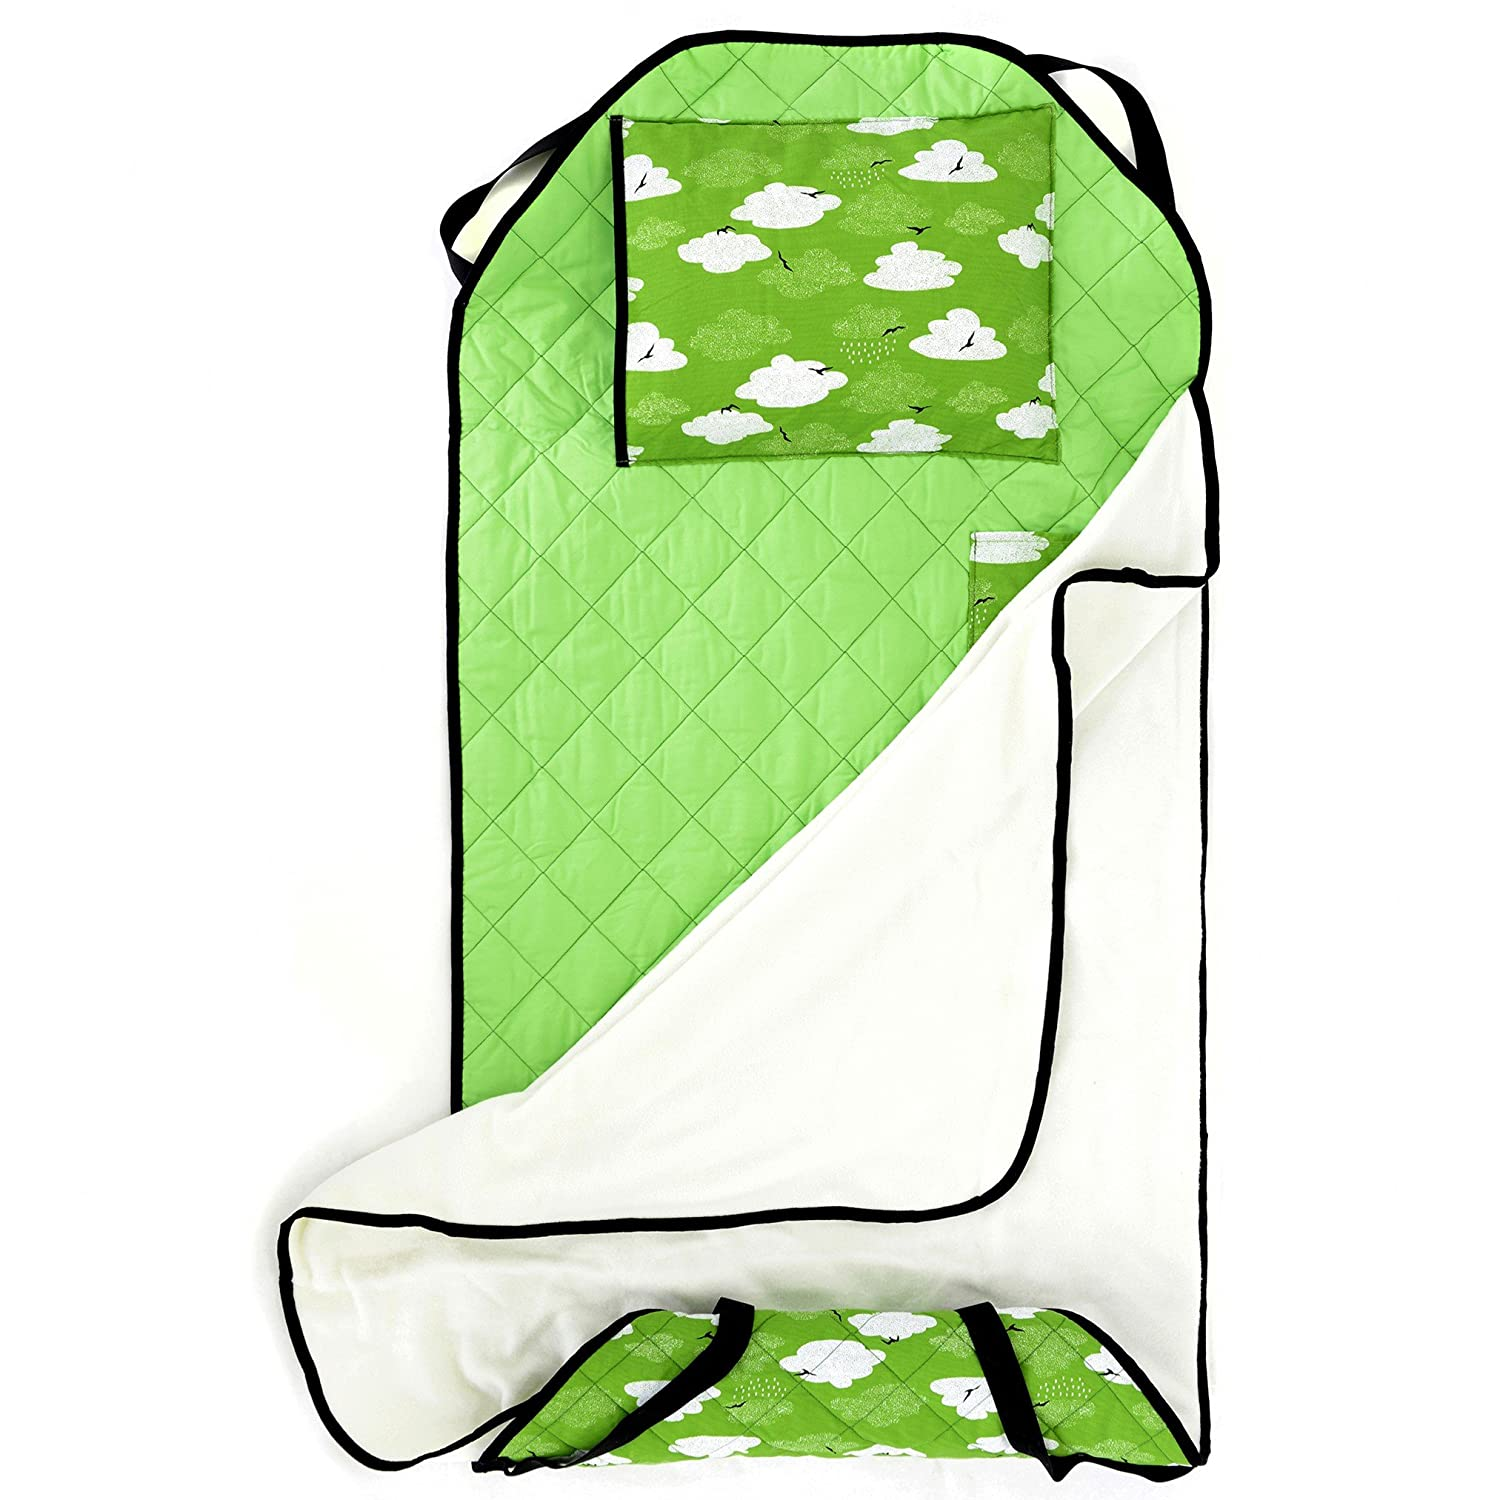 Amazon.com : Urban Infant Tot Cot All-In-One Preschool/Daycare ...